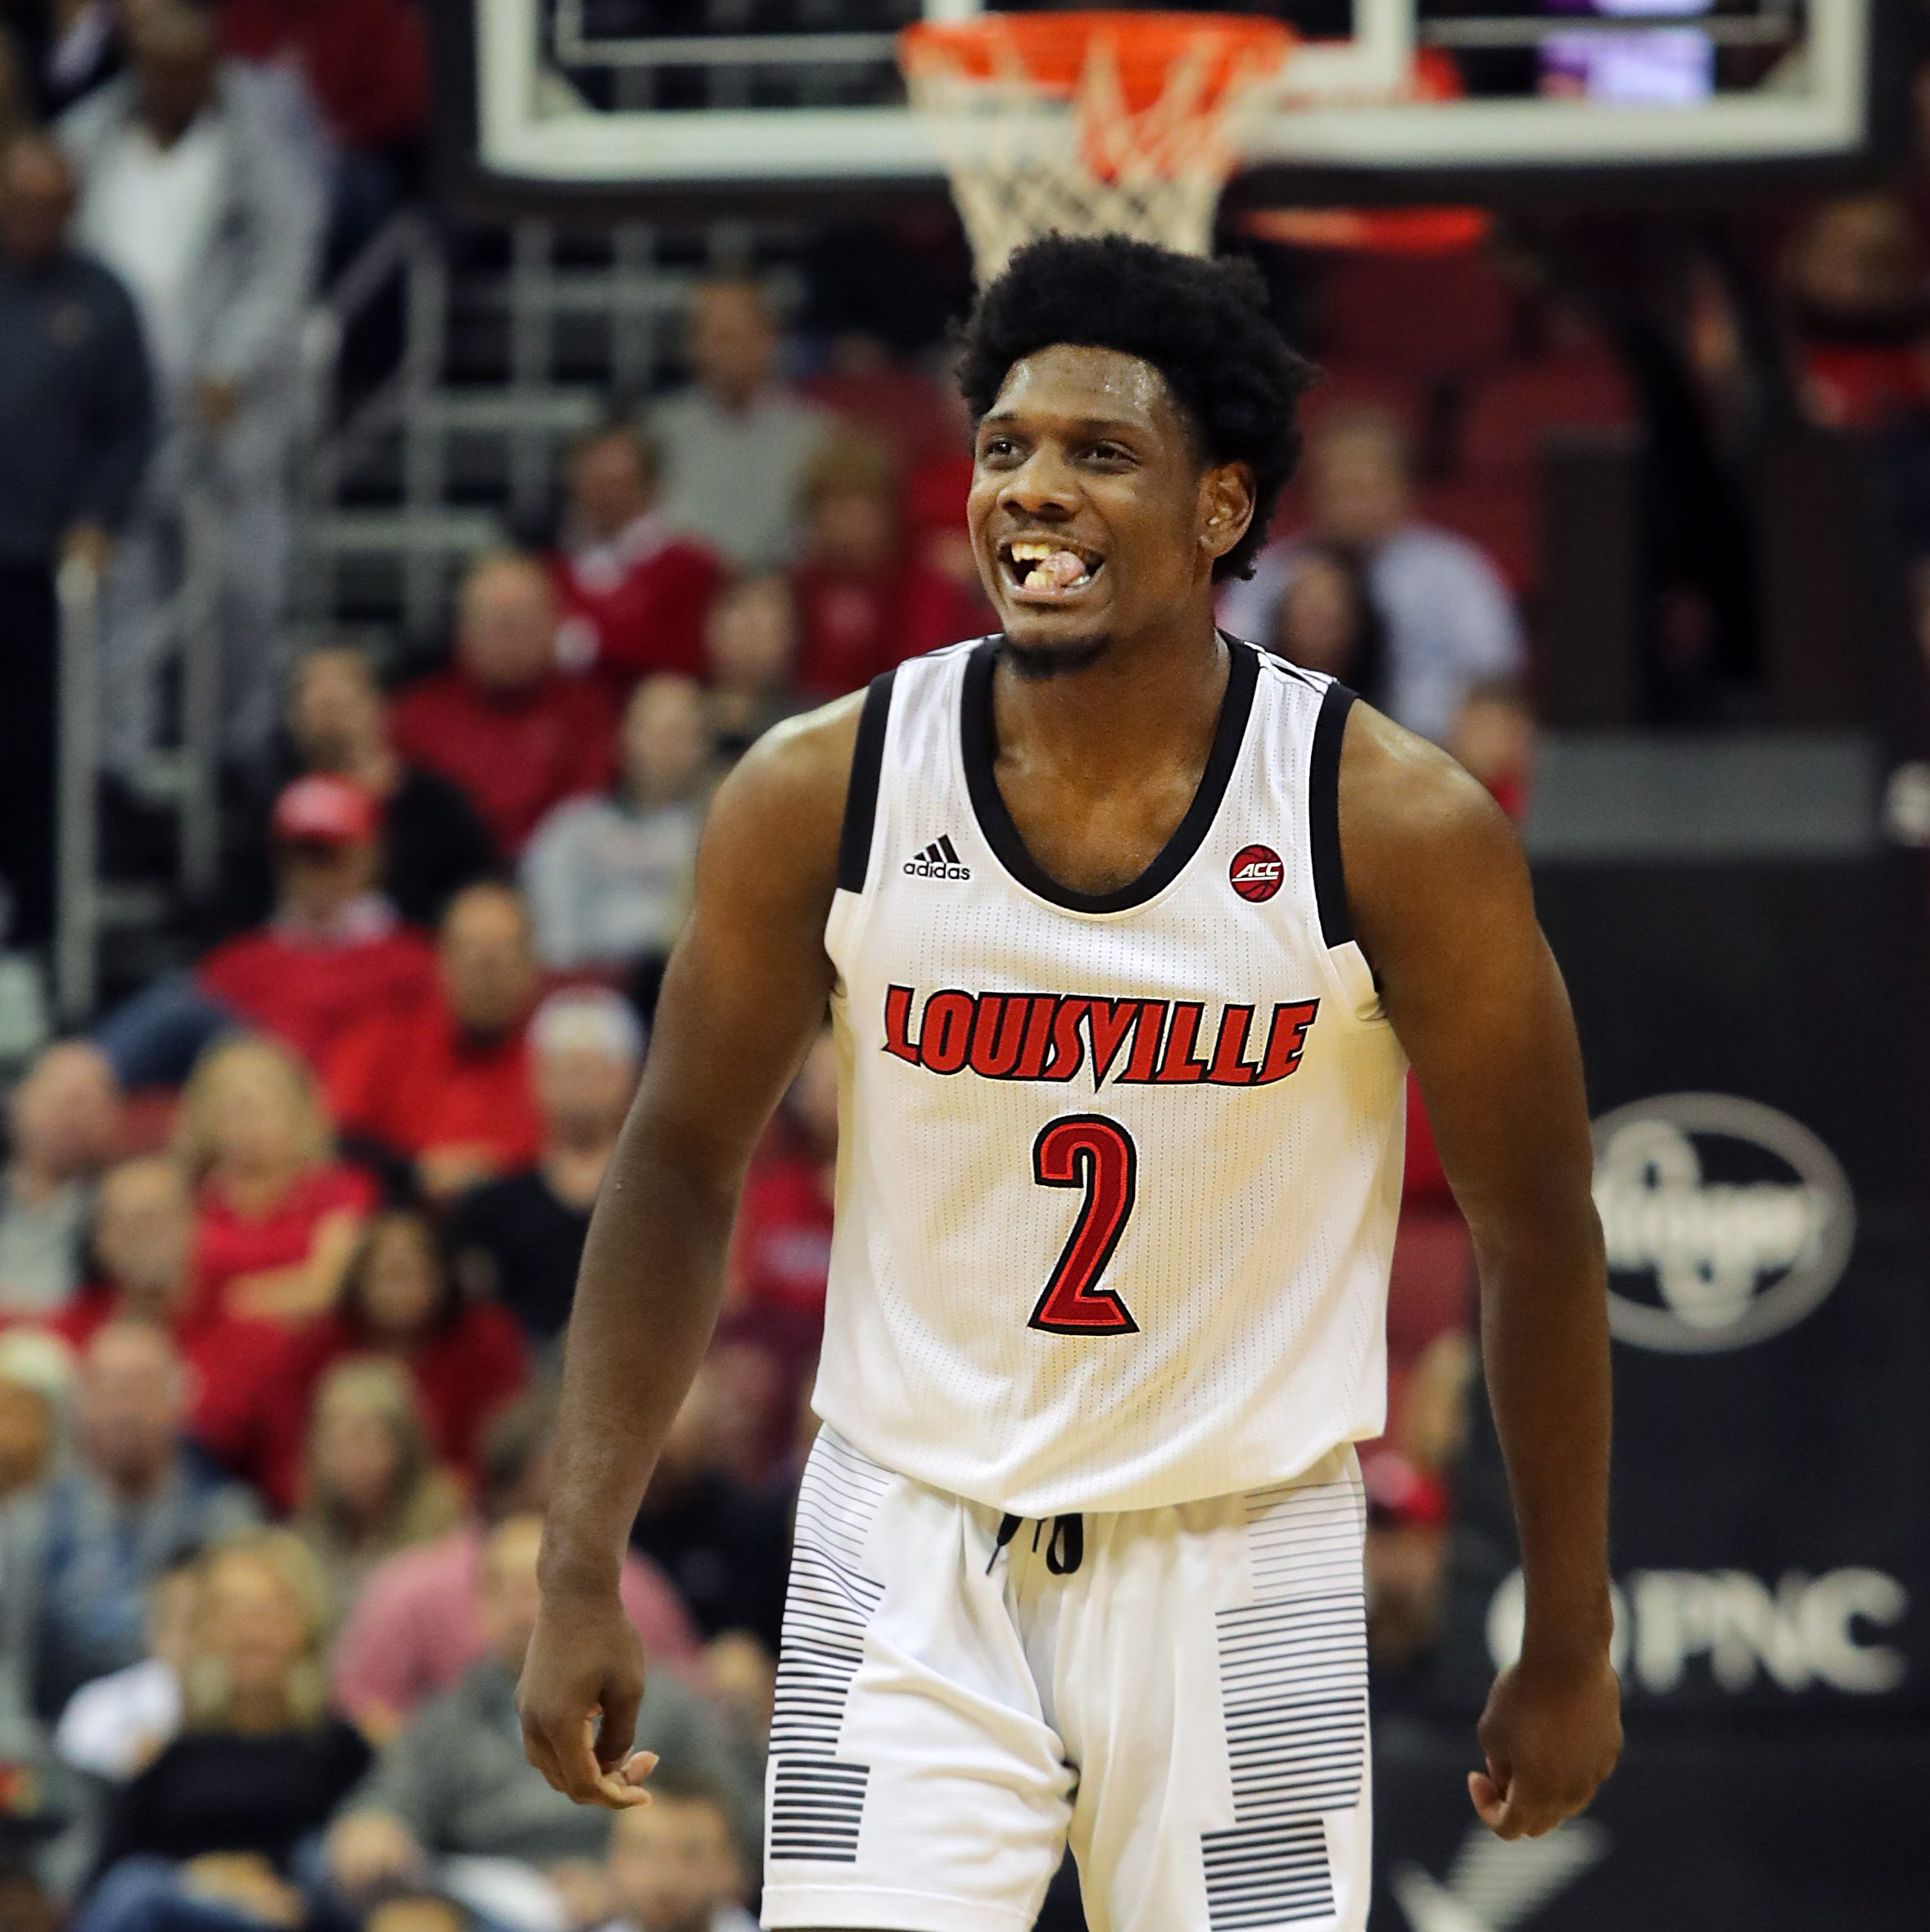 Key takeaways from Louisville's sharp-shooting win against Vermont